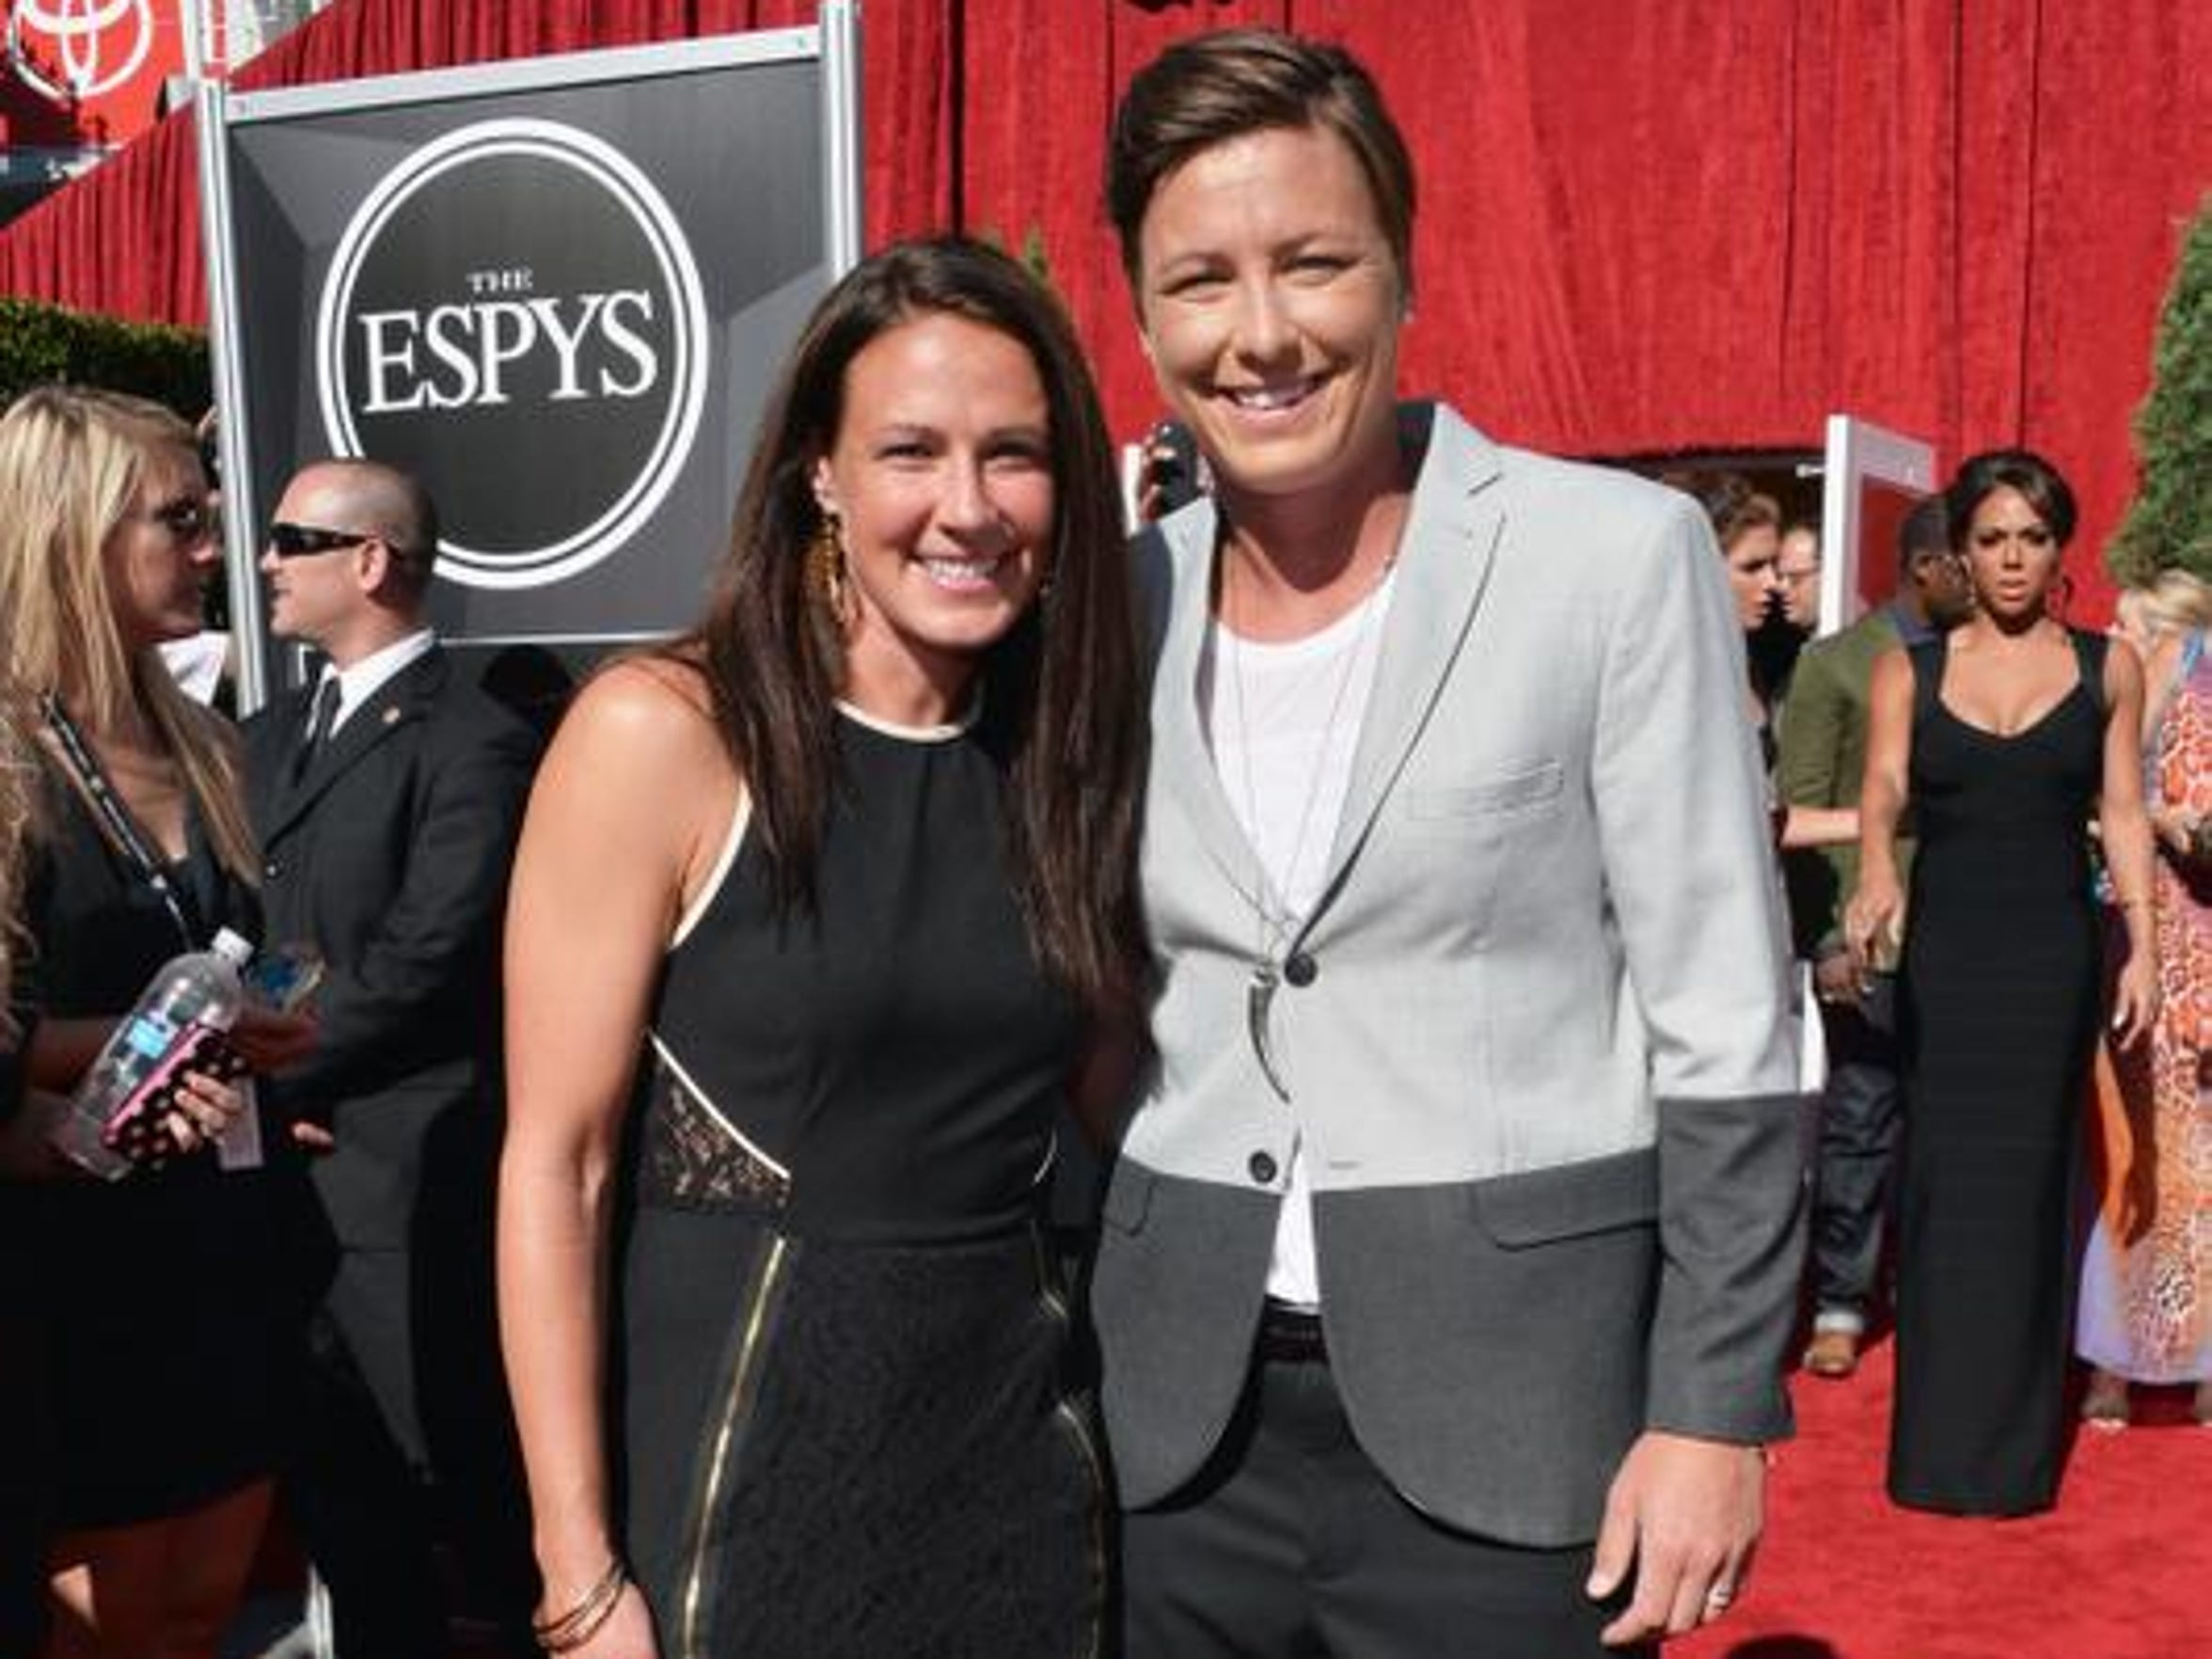 Sarah Huffman, left, and Abby Wambach at the 2013 ESPY Awards in July.